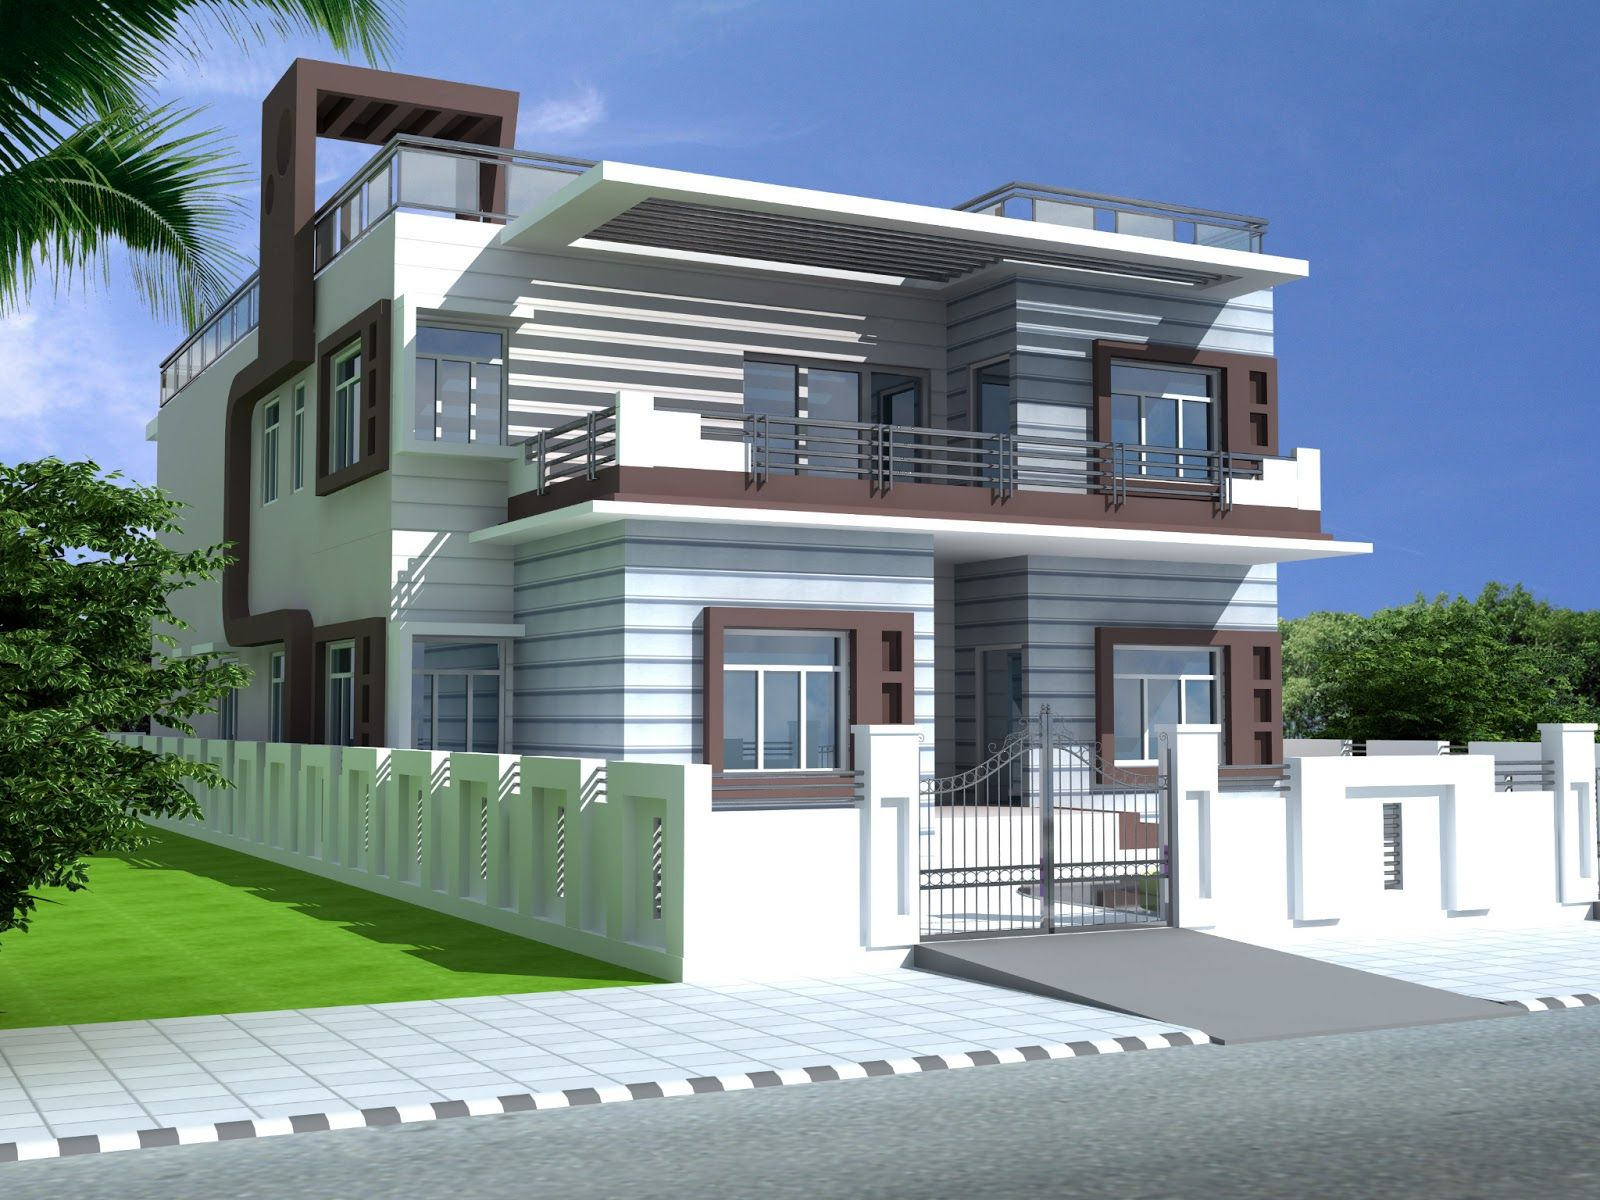 6 bedrooms duplex house design in 390m2 13m x 30m Small duplex house photos